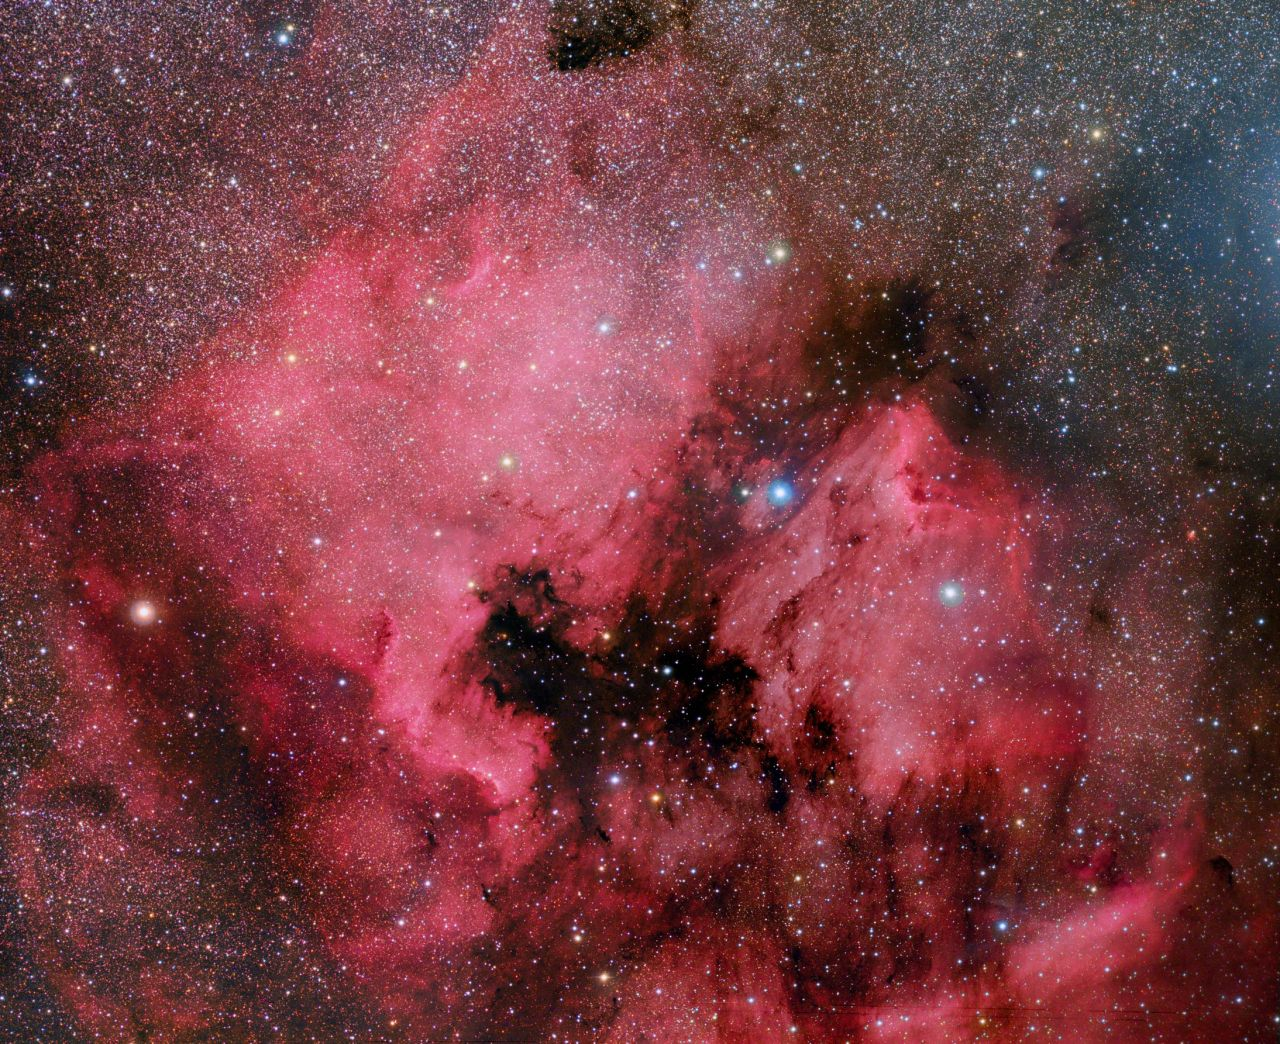 C20-NGC7000_IC5070-LRGB-mosaic3final4aT-5def-C